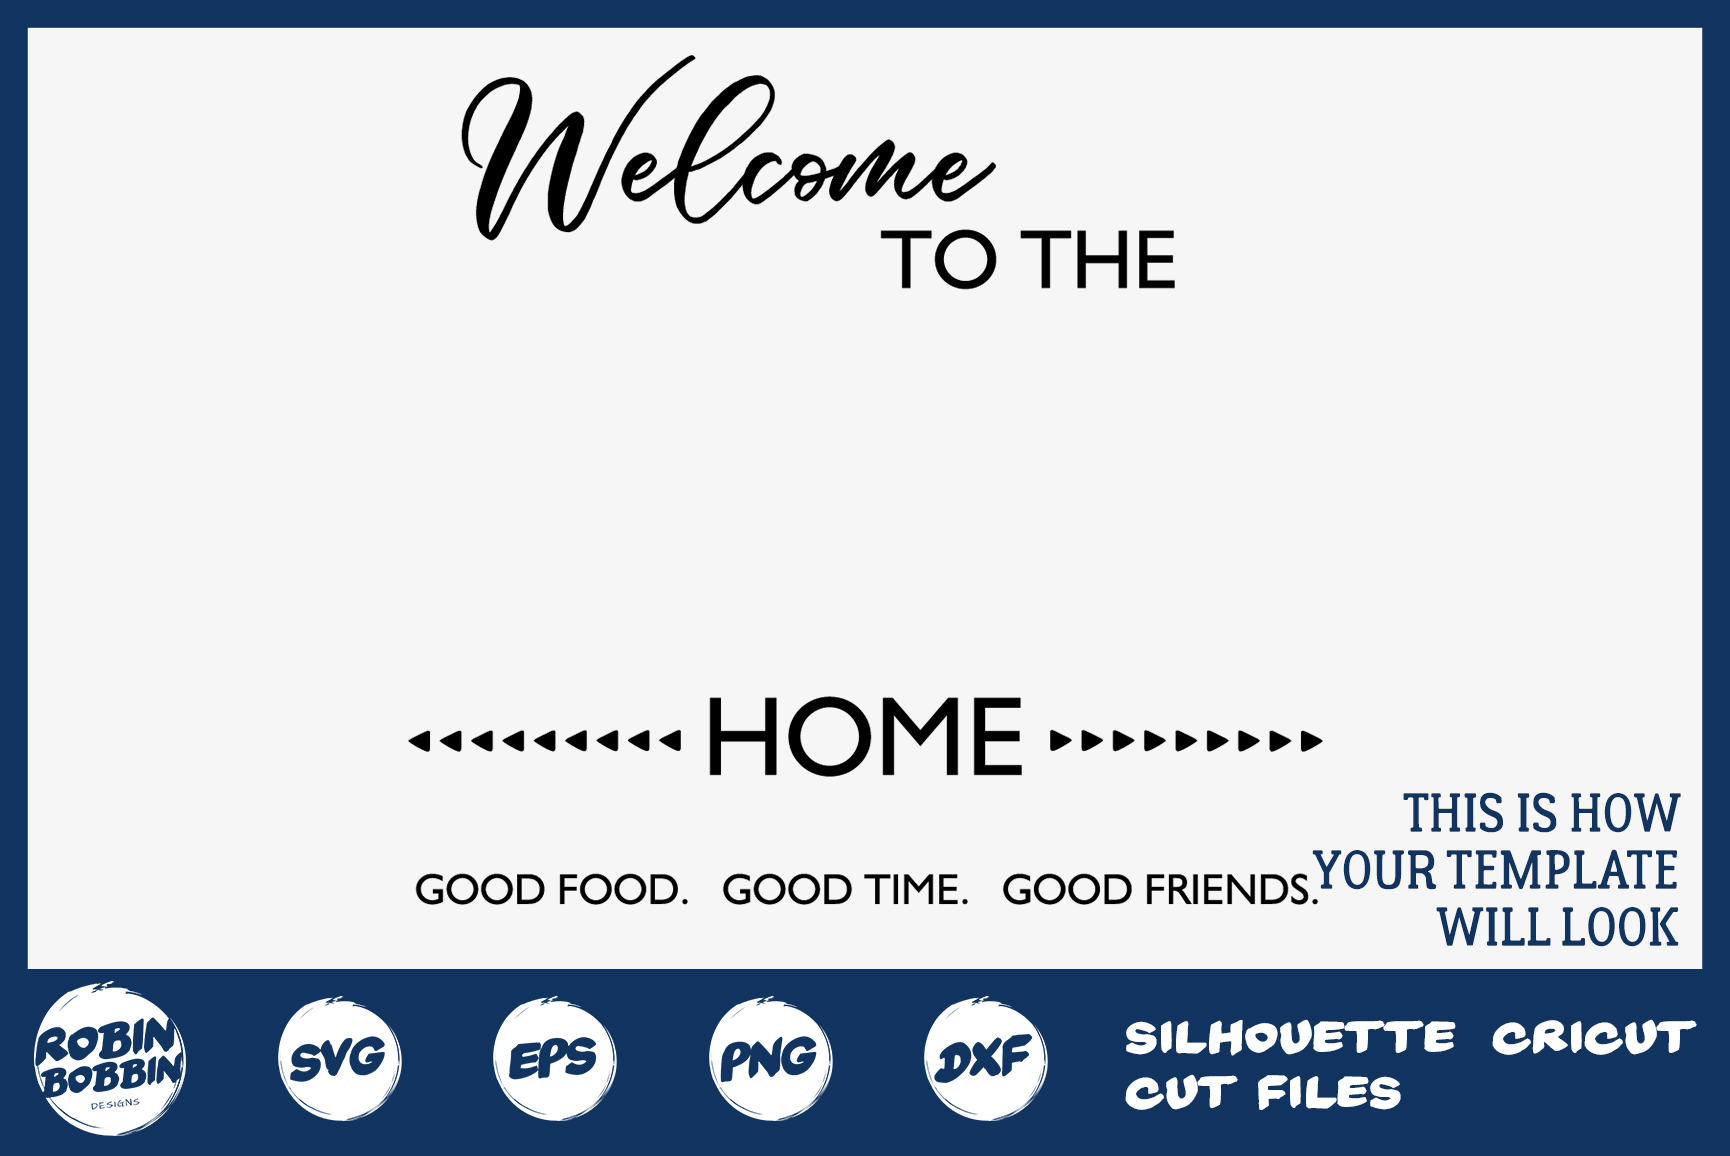 Family SVG, Newlyweds SVG, Welcome svg, Family Printable example image 2